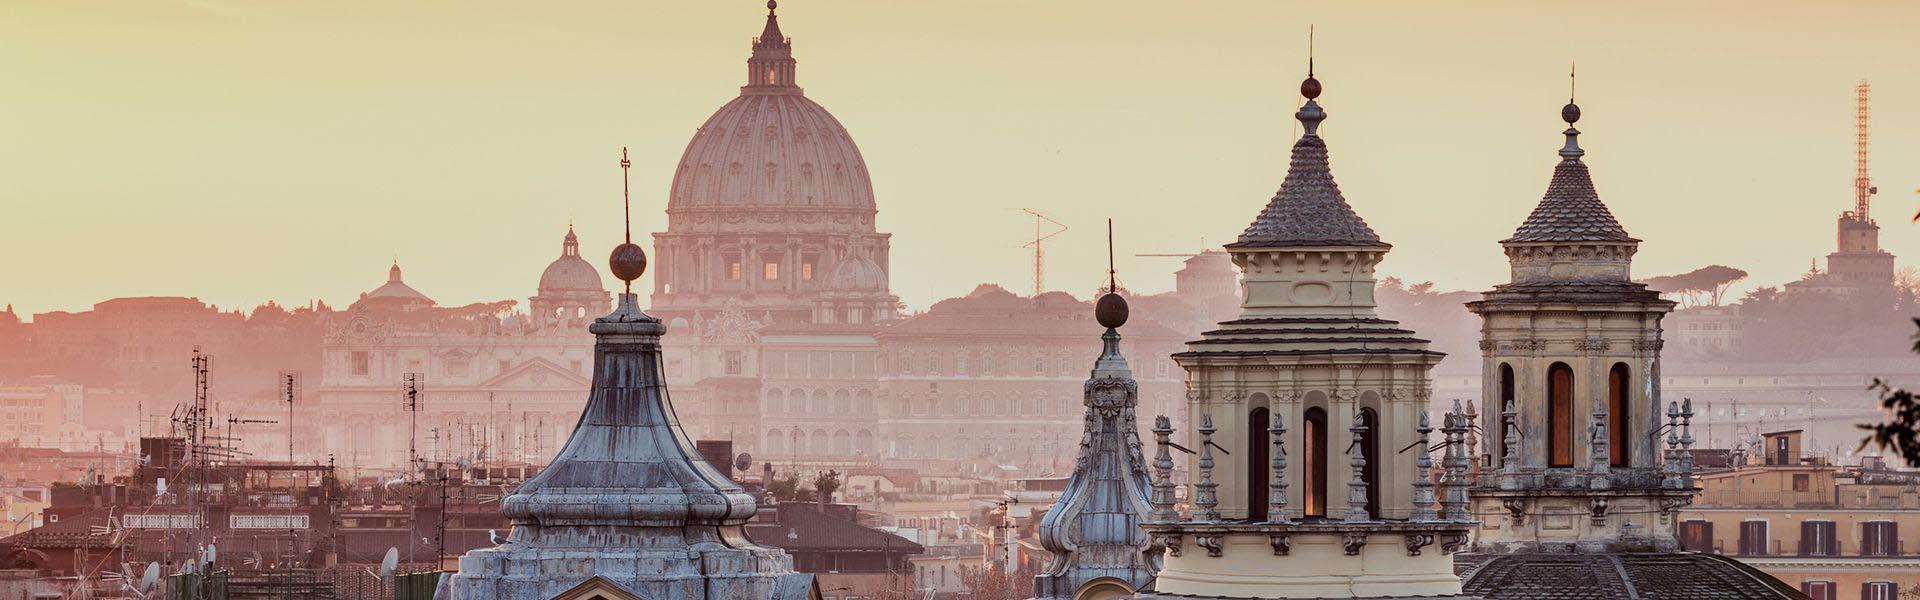 Rome skyline with St. Peter's Basilica